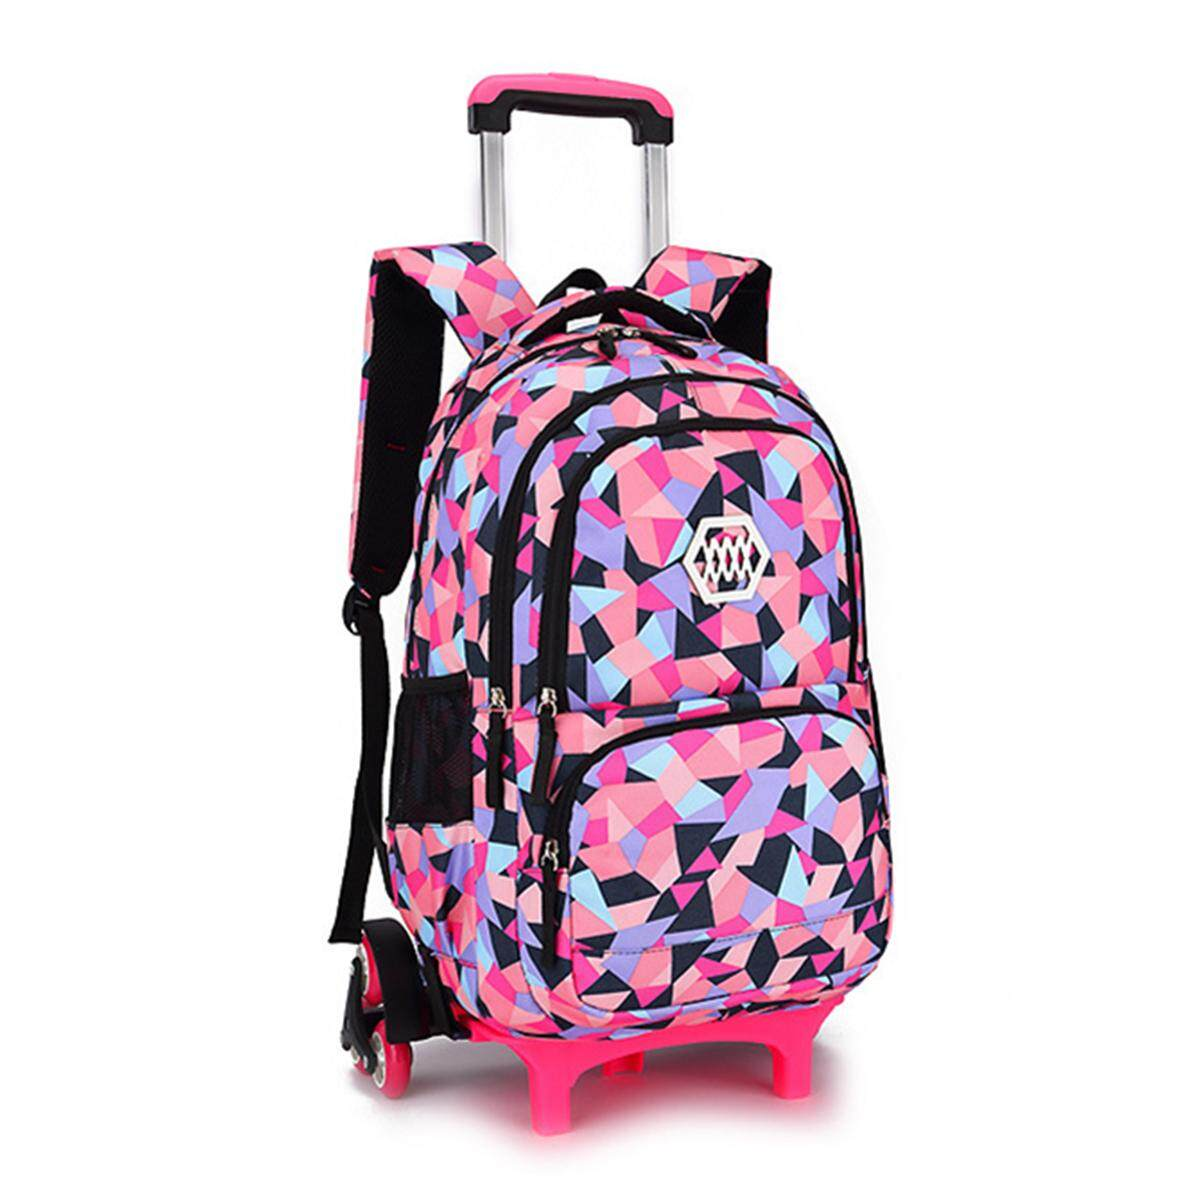 0ff29dce63 New Girls Boys Children Trolley Backpack Travel Suitcase Kids Wheeled  School Bag  2wheel